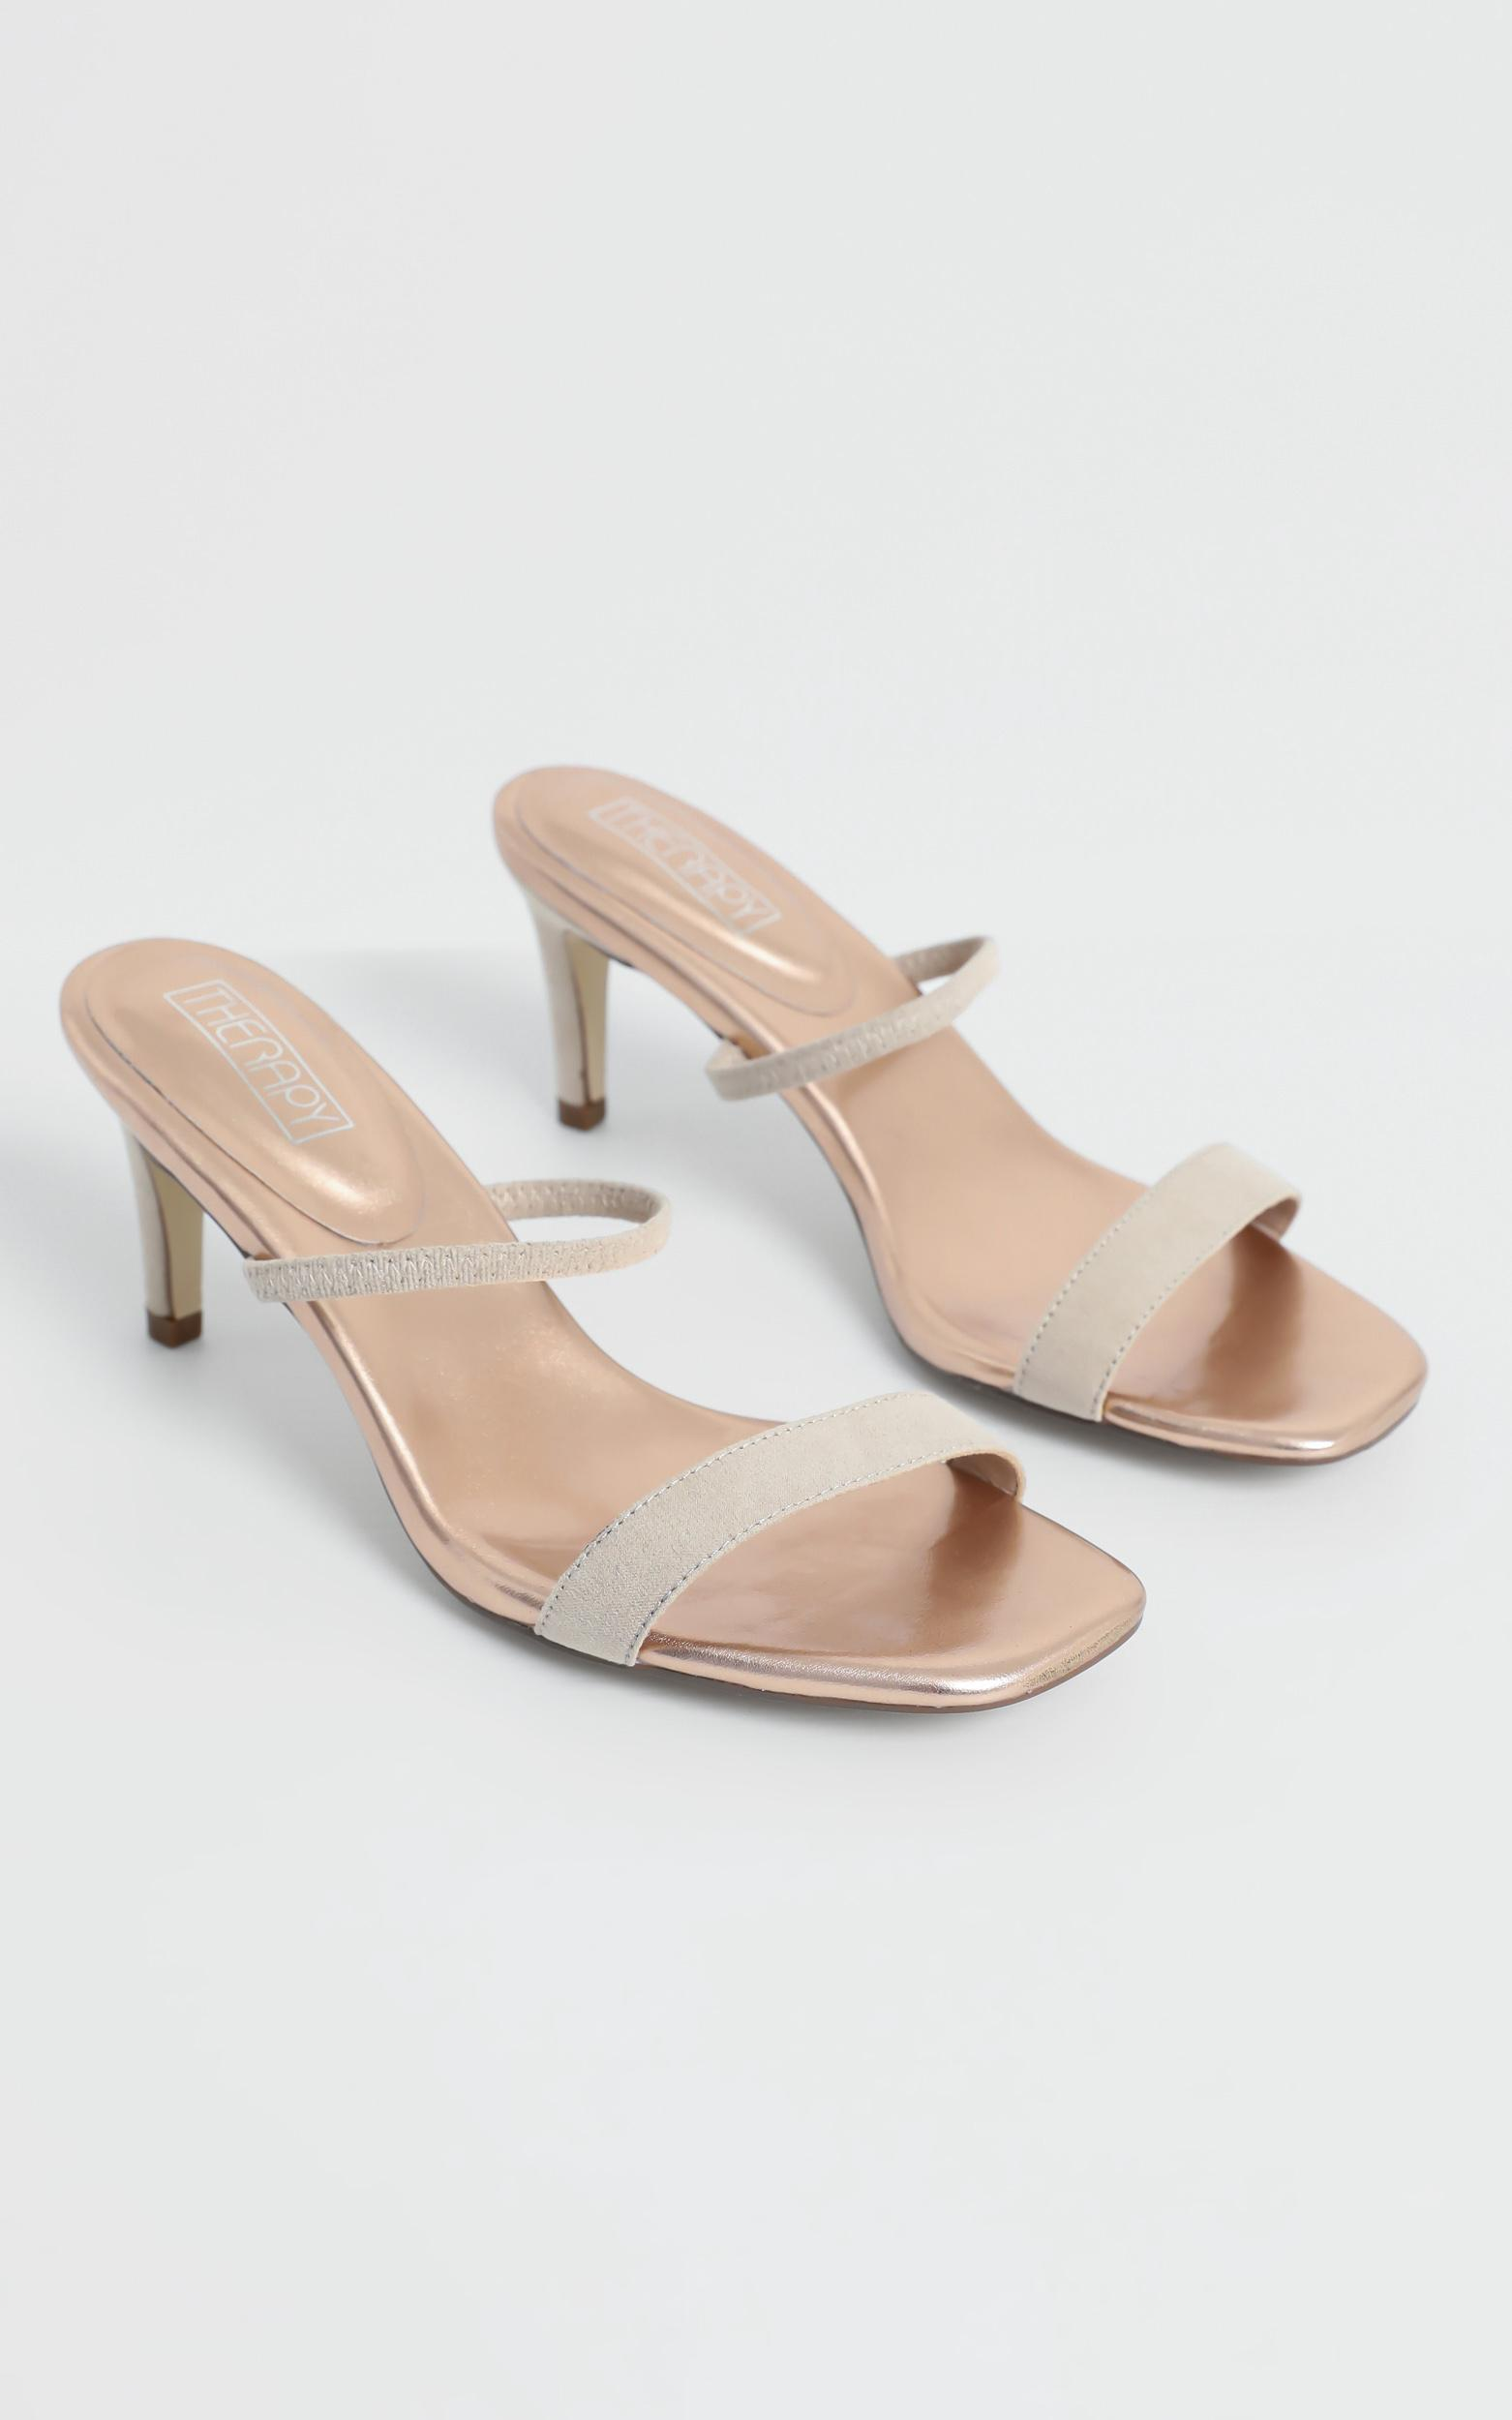 Therapy - Flash Heels in Pink - 5, BRN9, hi-res image number null